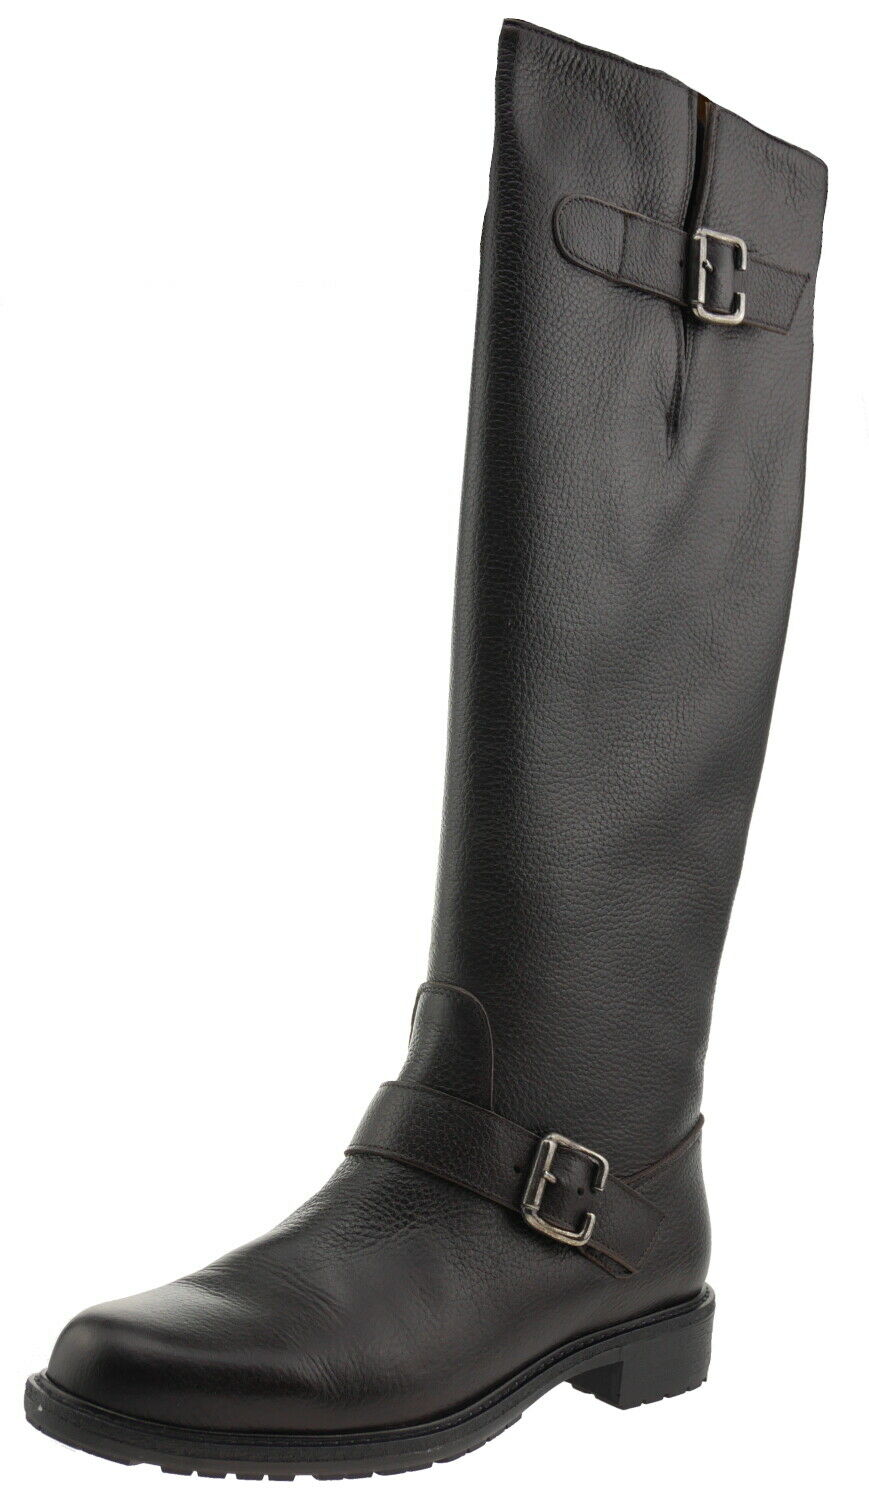 Pollini Sa26272 Leather Boots with Buckle Brown 187894